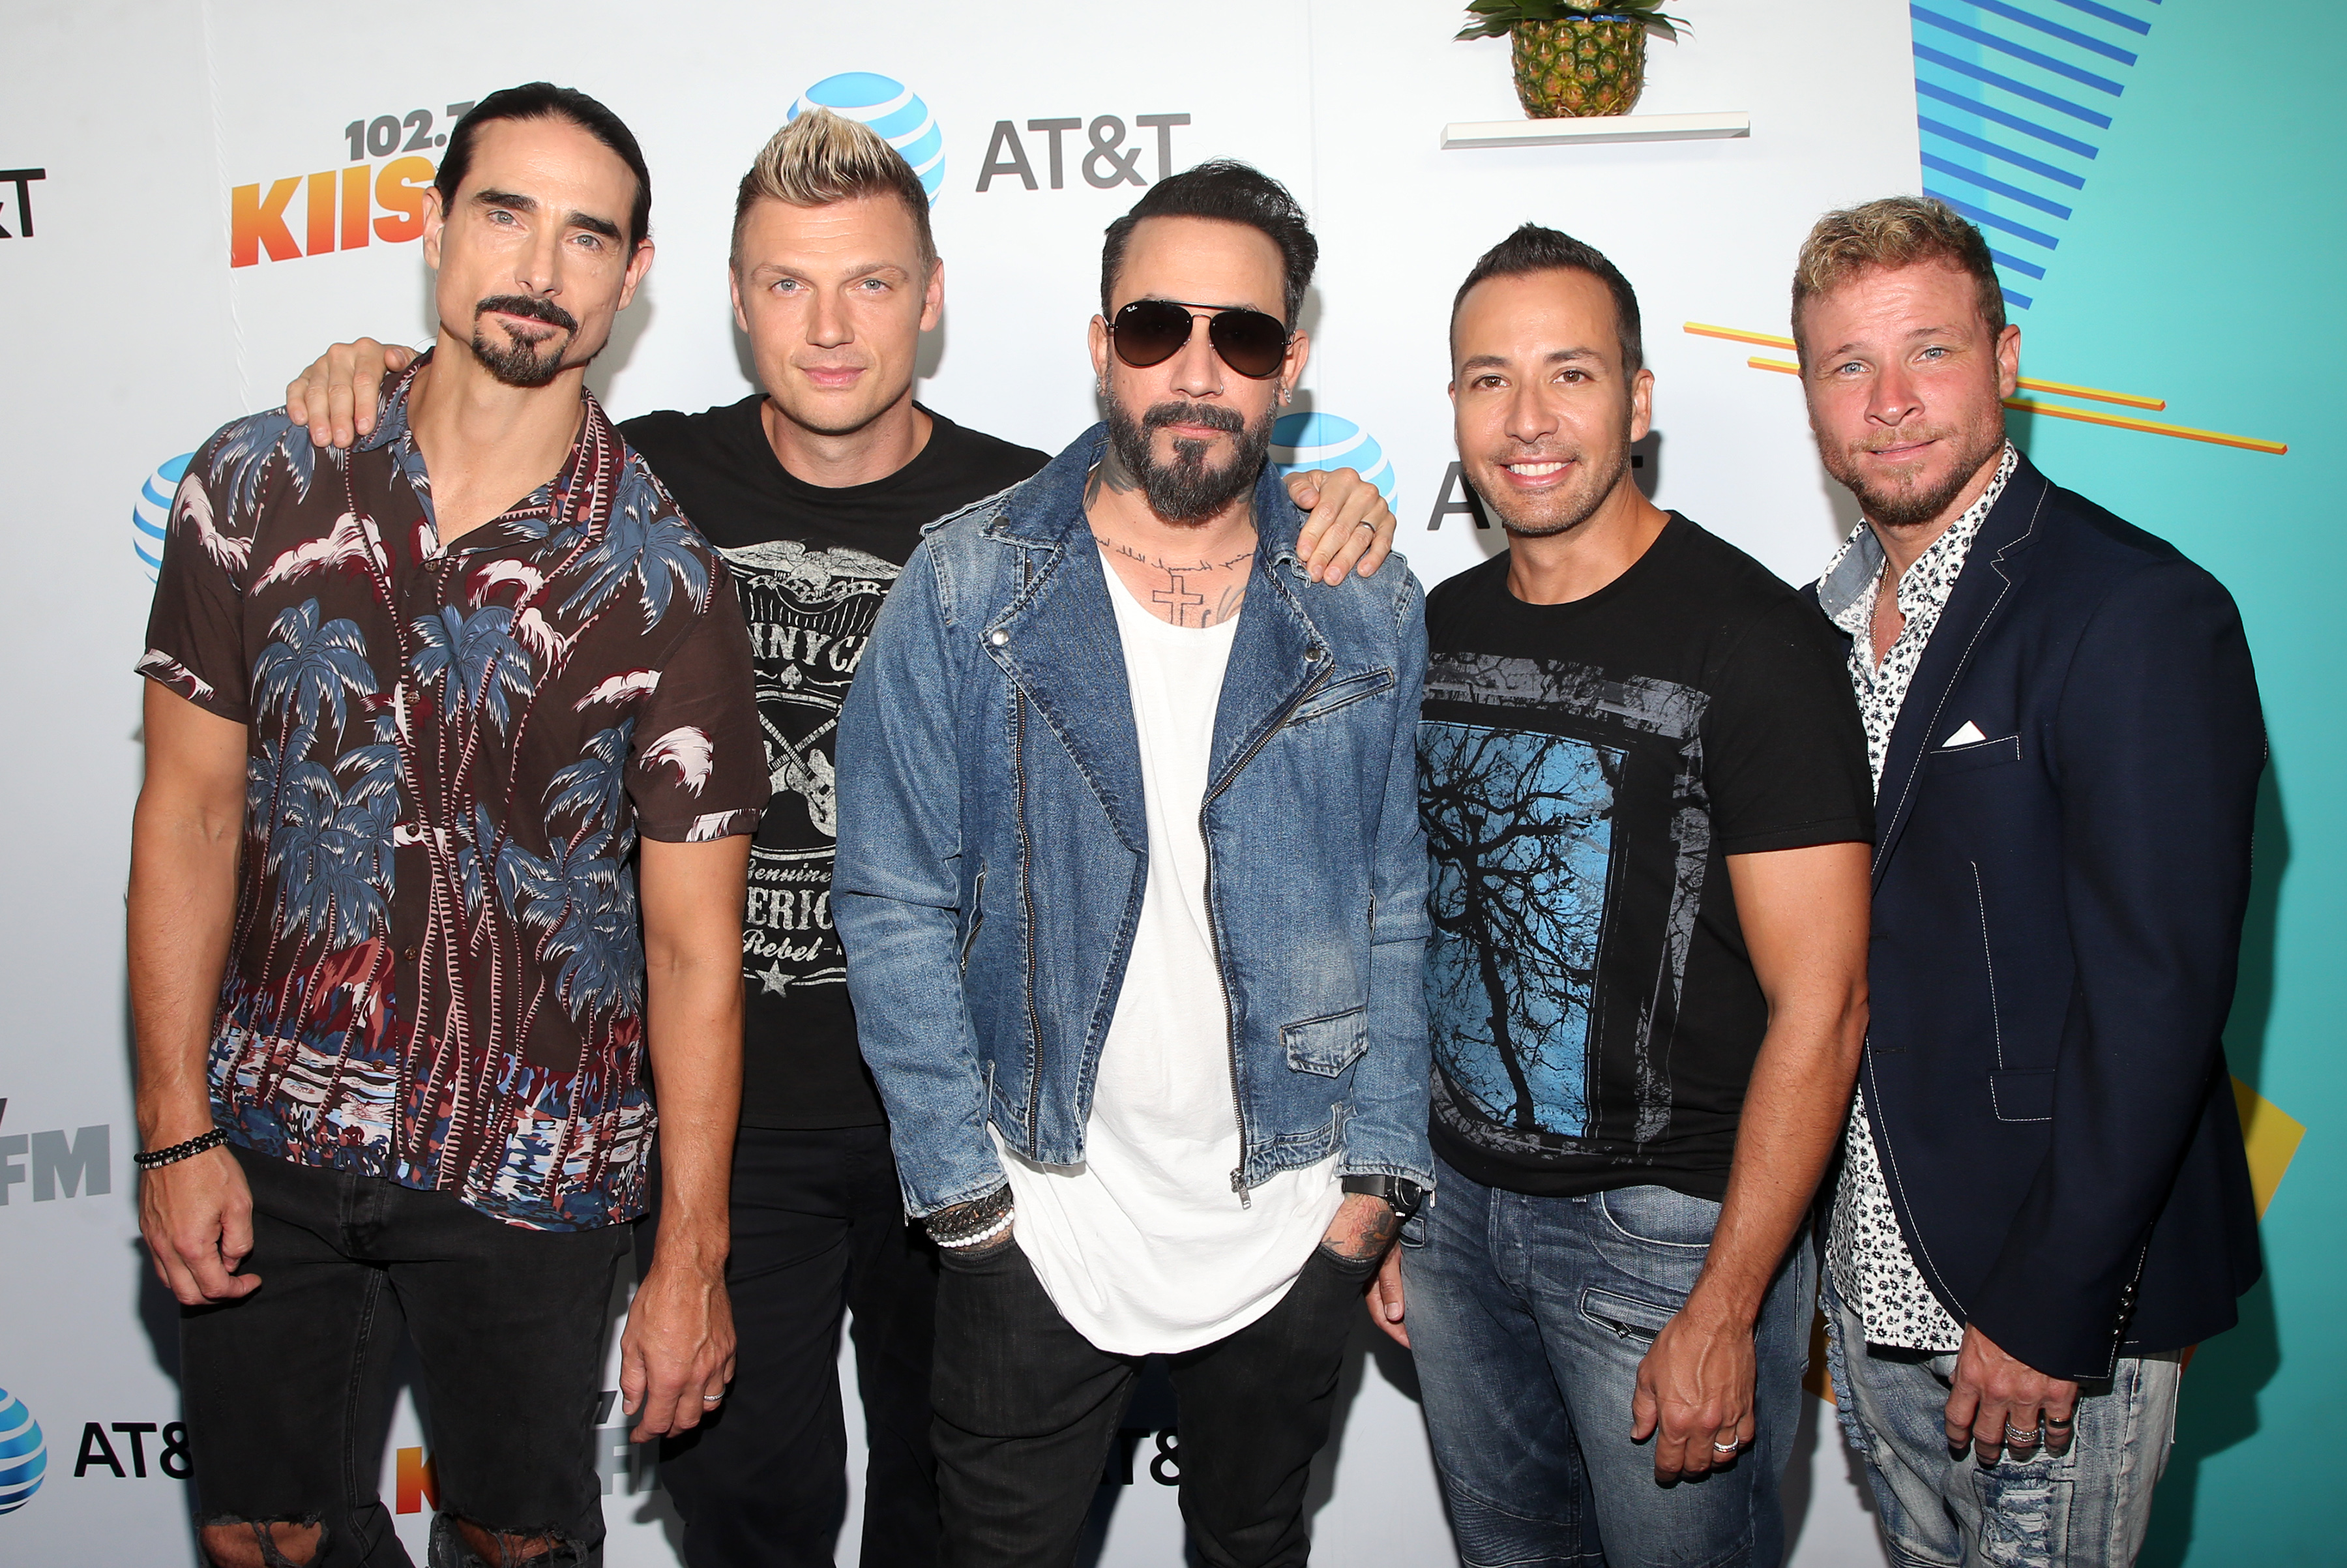 2018 iHeartRadio's Wango TangoFeaturing: Kevin Richardson, Nick Carter, AJ McLean, Howie Dorough, and Brian Littrell of music group Backstreet BoysWhere: Los Angeles, California, United StatesWhen: 02 Jun 2018Credit: FayesVision/WENN.com